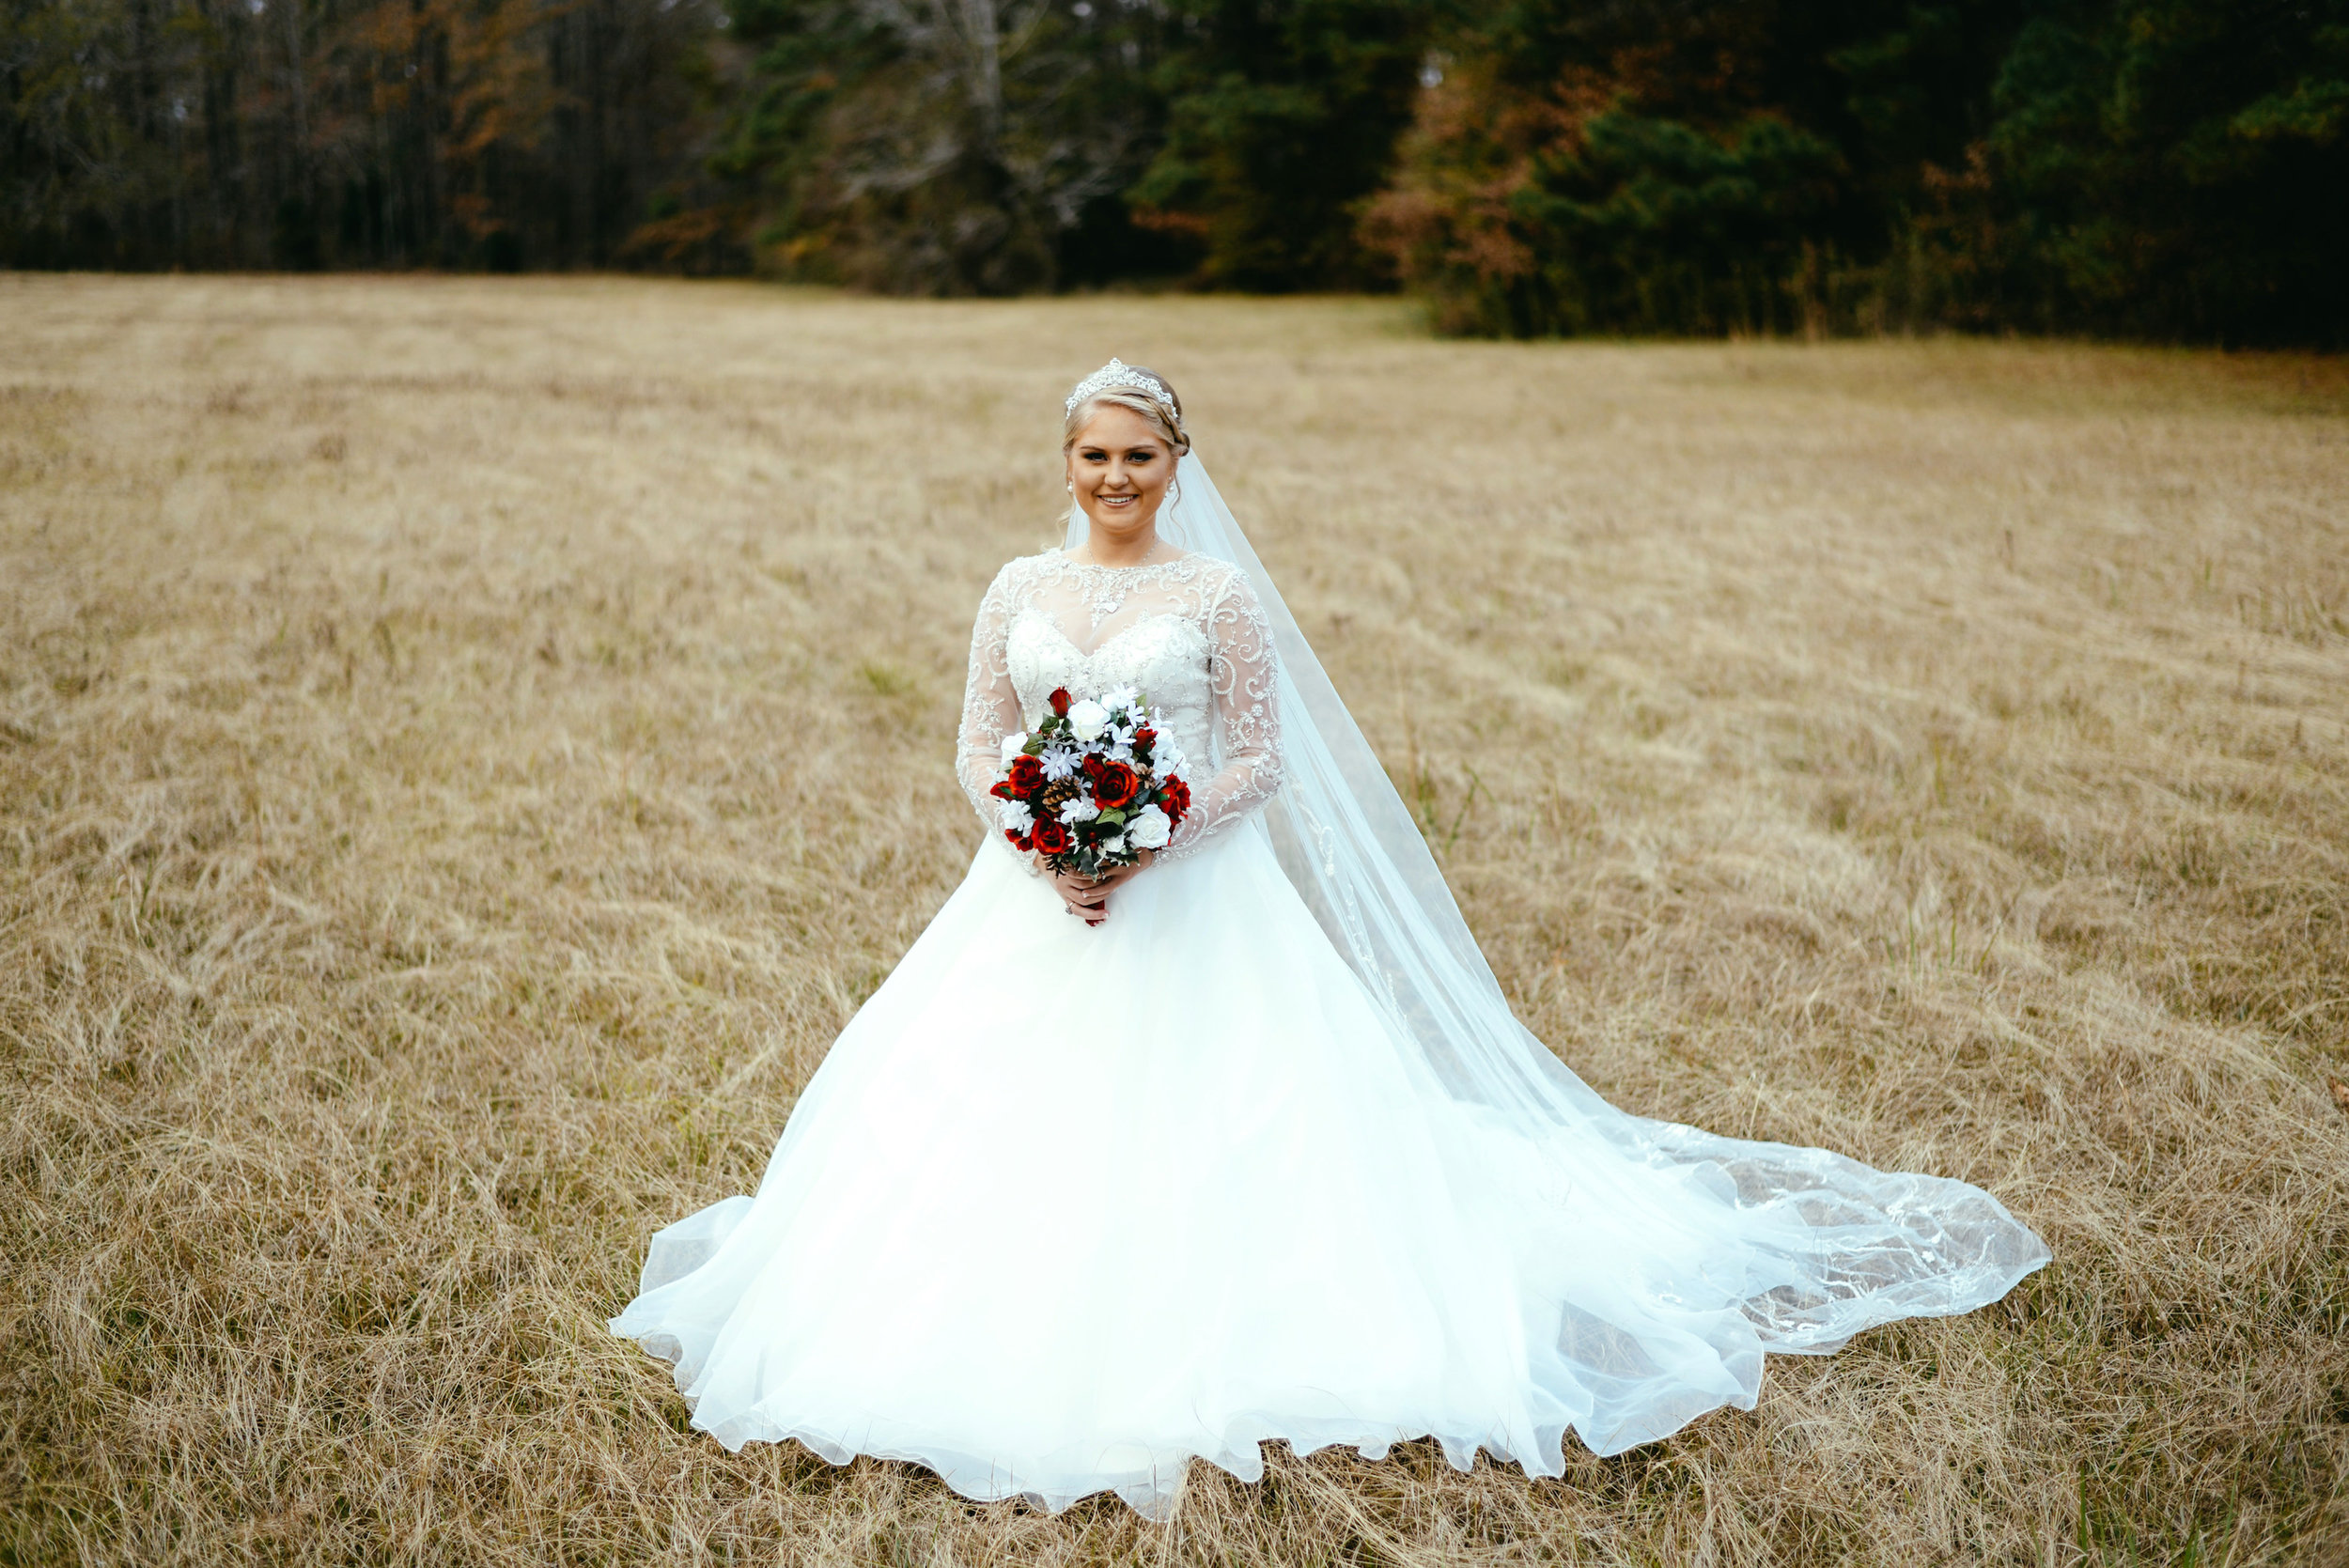 bride full gown in field